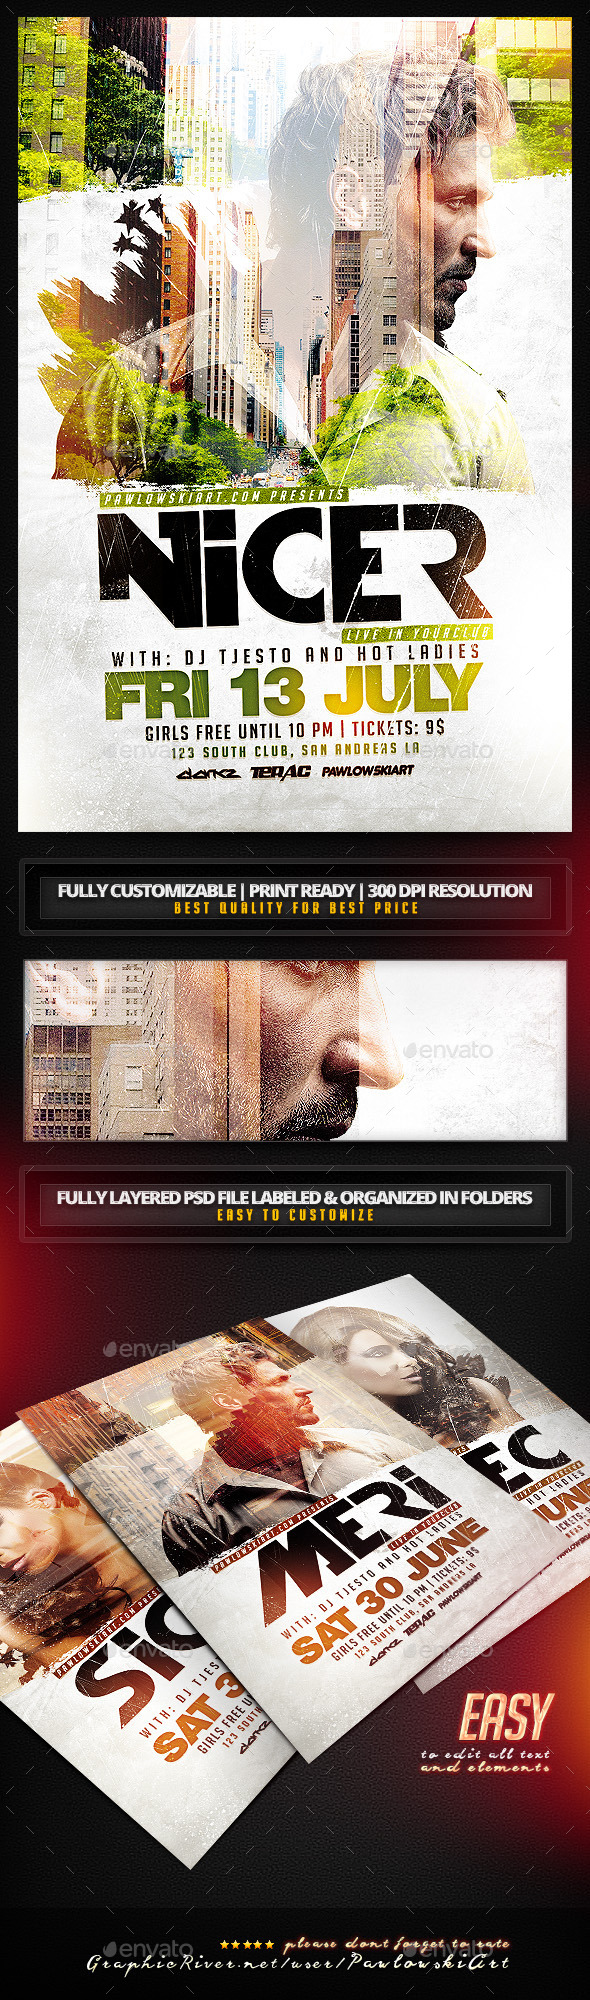 GraphicRiver Double Exposure Flyer Template 11591809